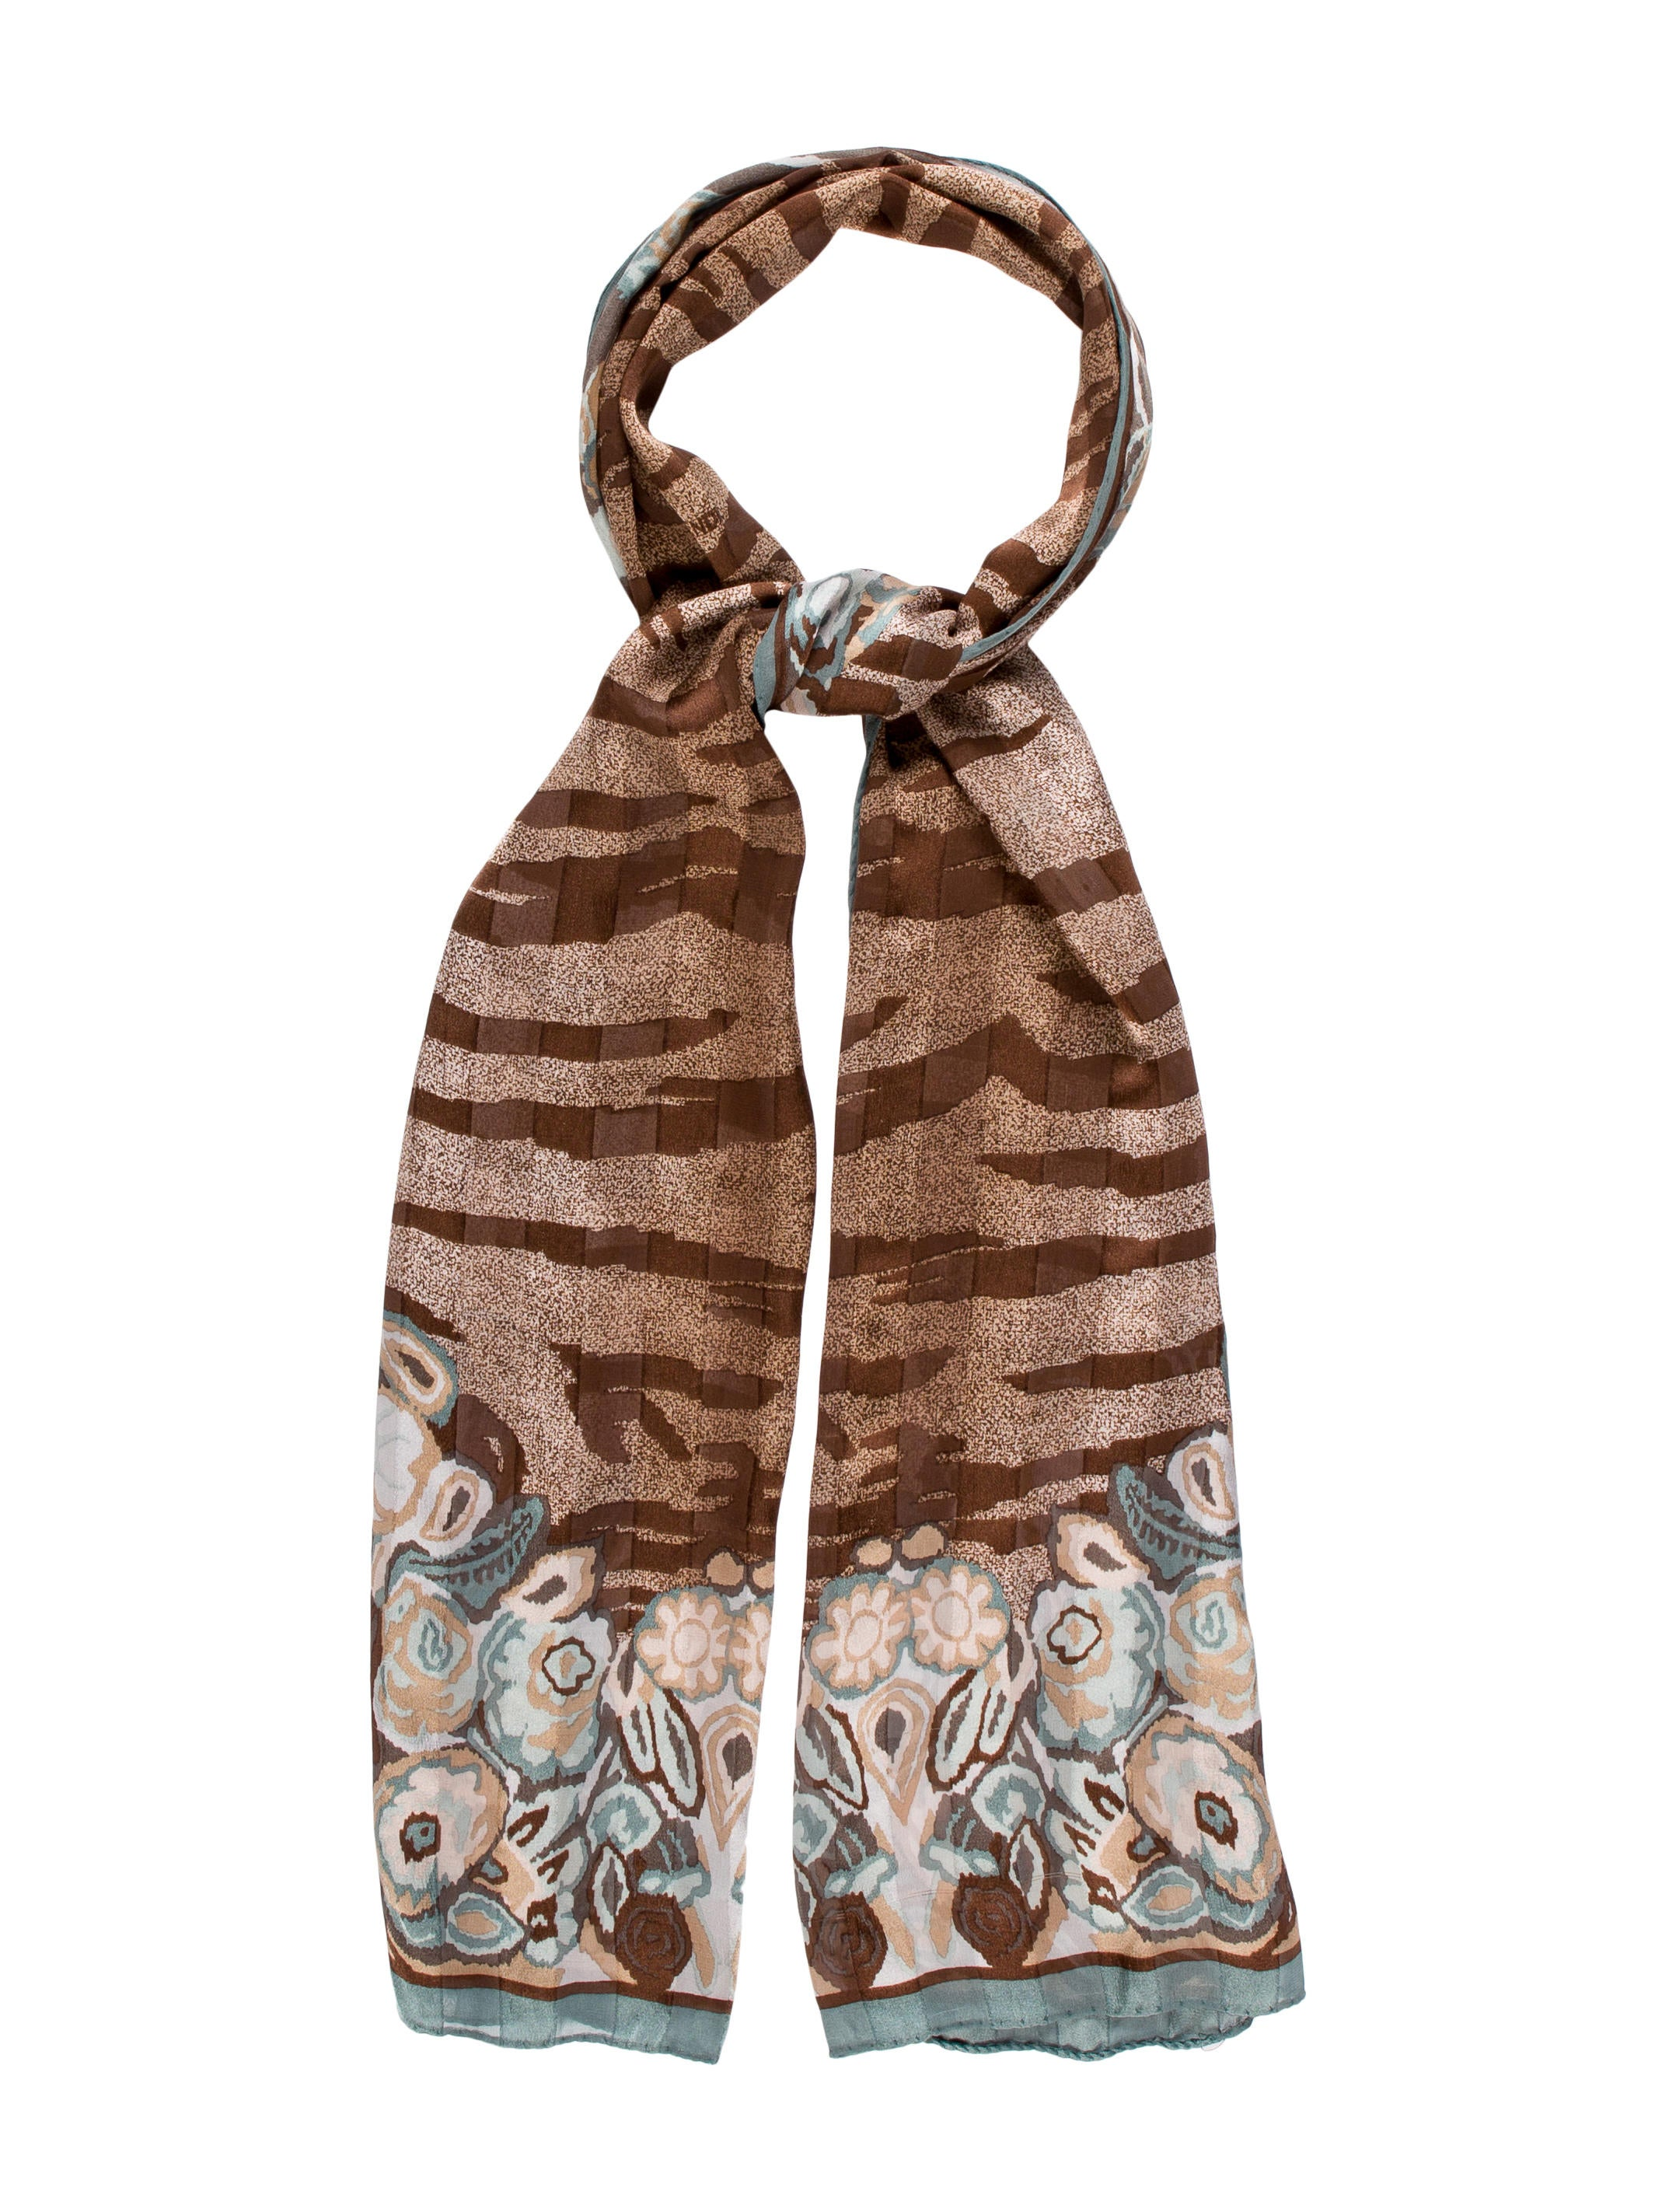 Printed silk scarves in a perfect size to style at the neck in classic prints that transcend seasons and work with every outfit. Silk habutai with a subtle sheen and hand-rolled edges. 20